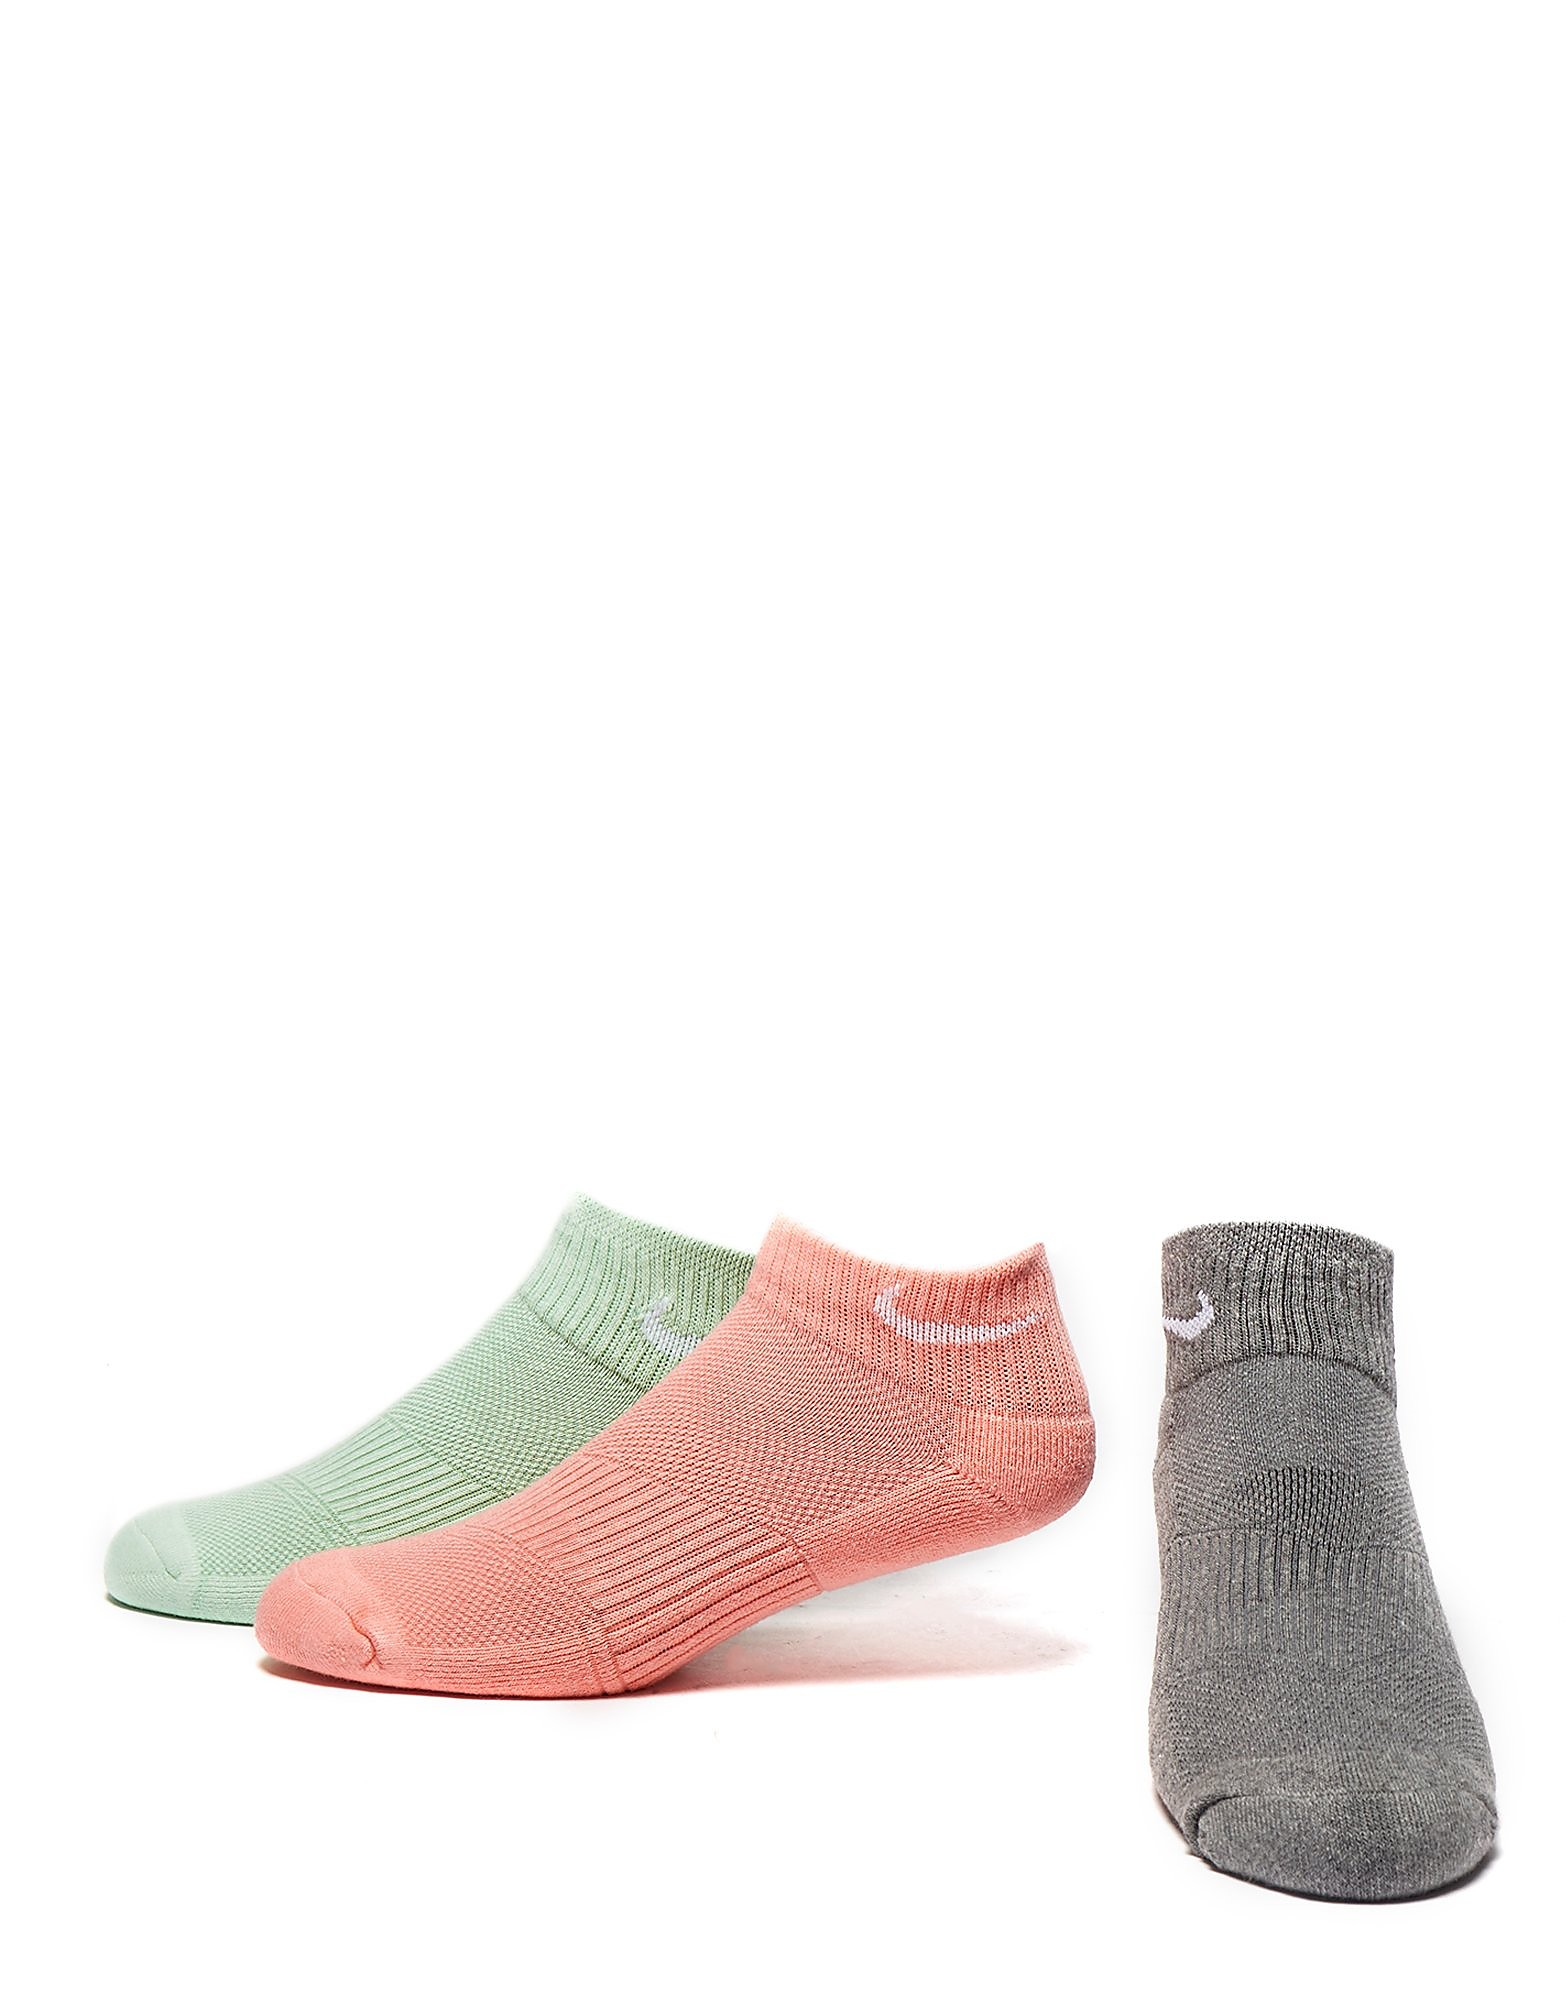 Nike 3 Pack Cushioned Quarter Socks